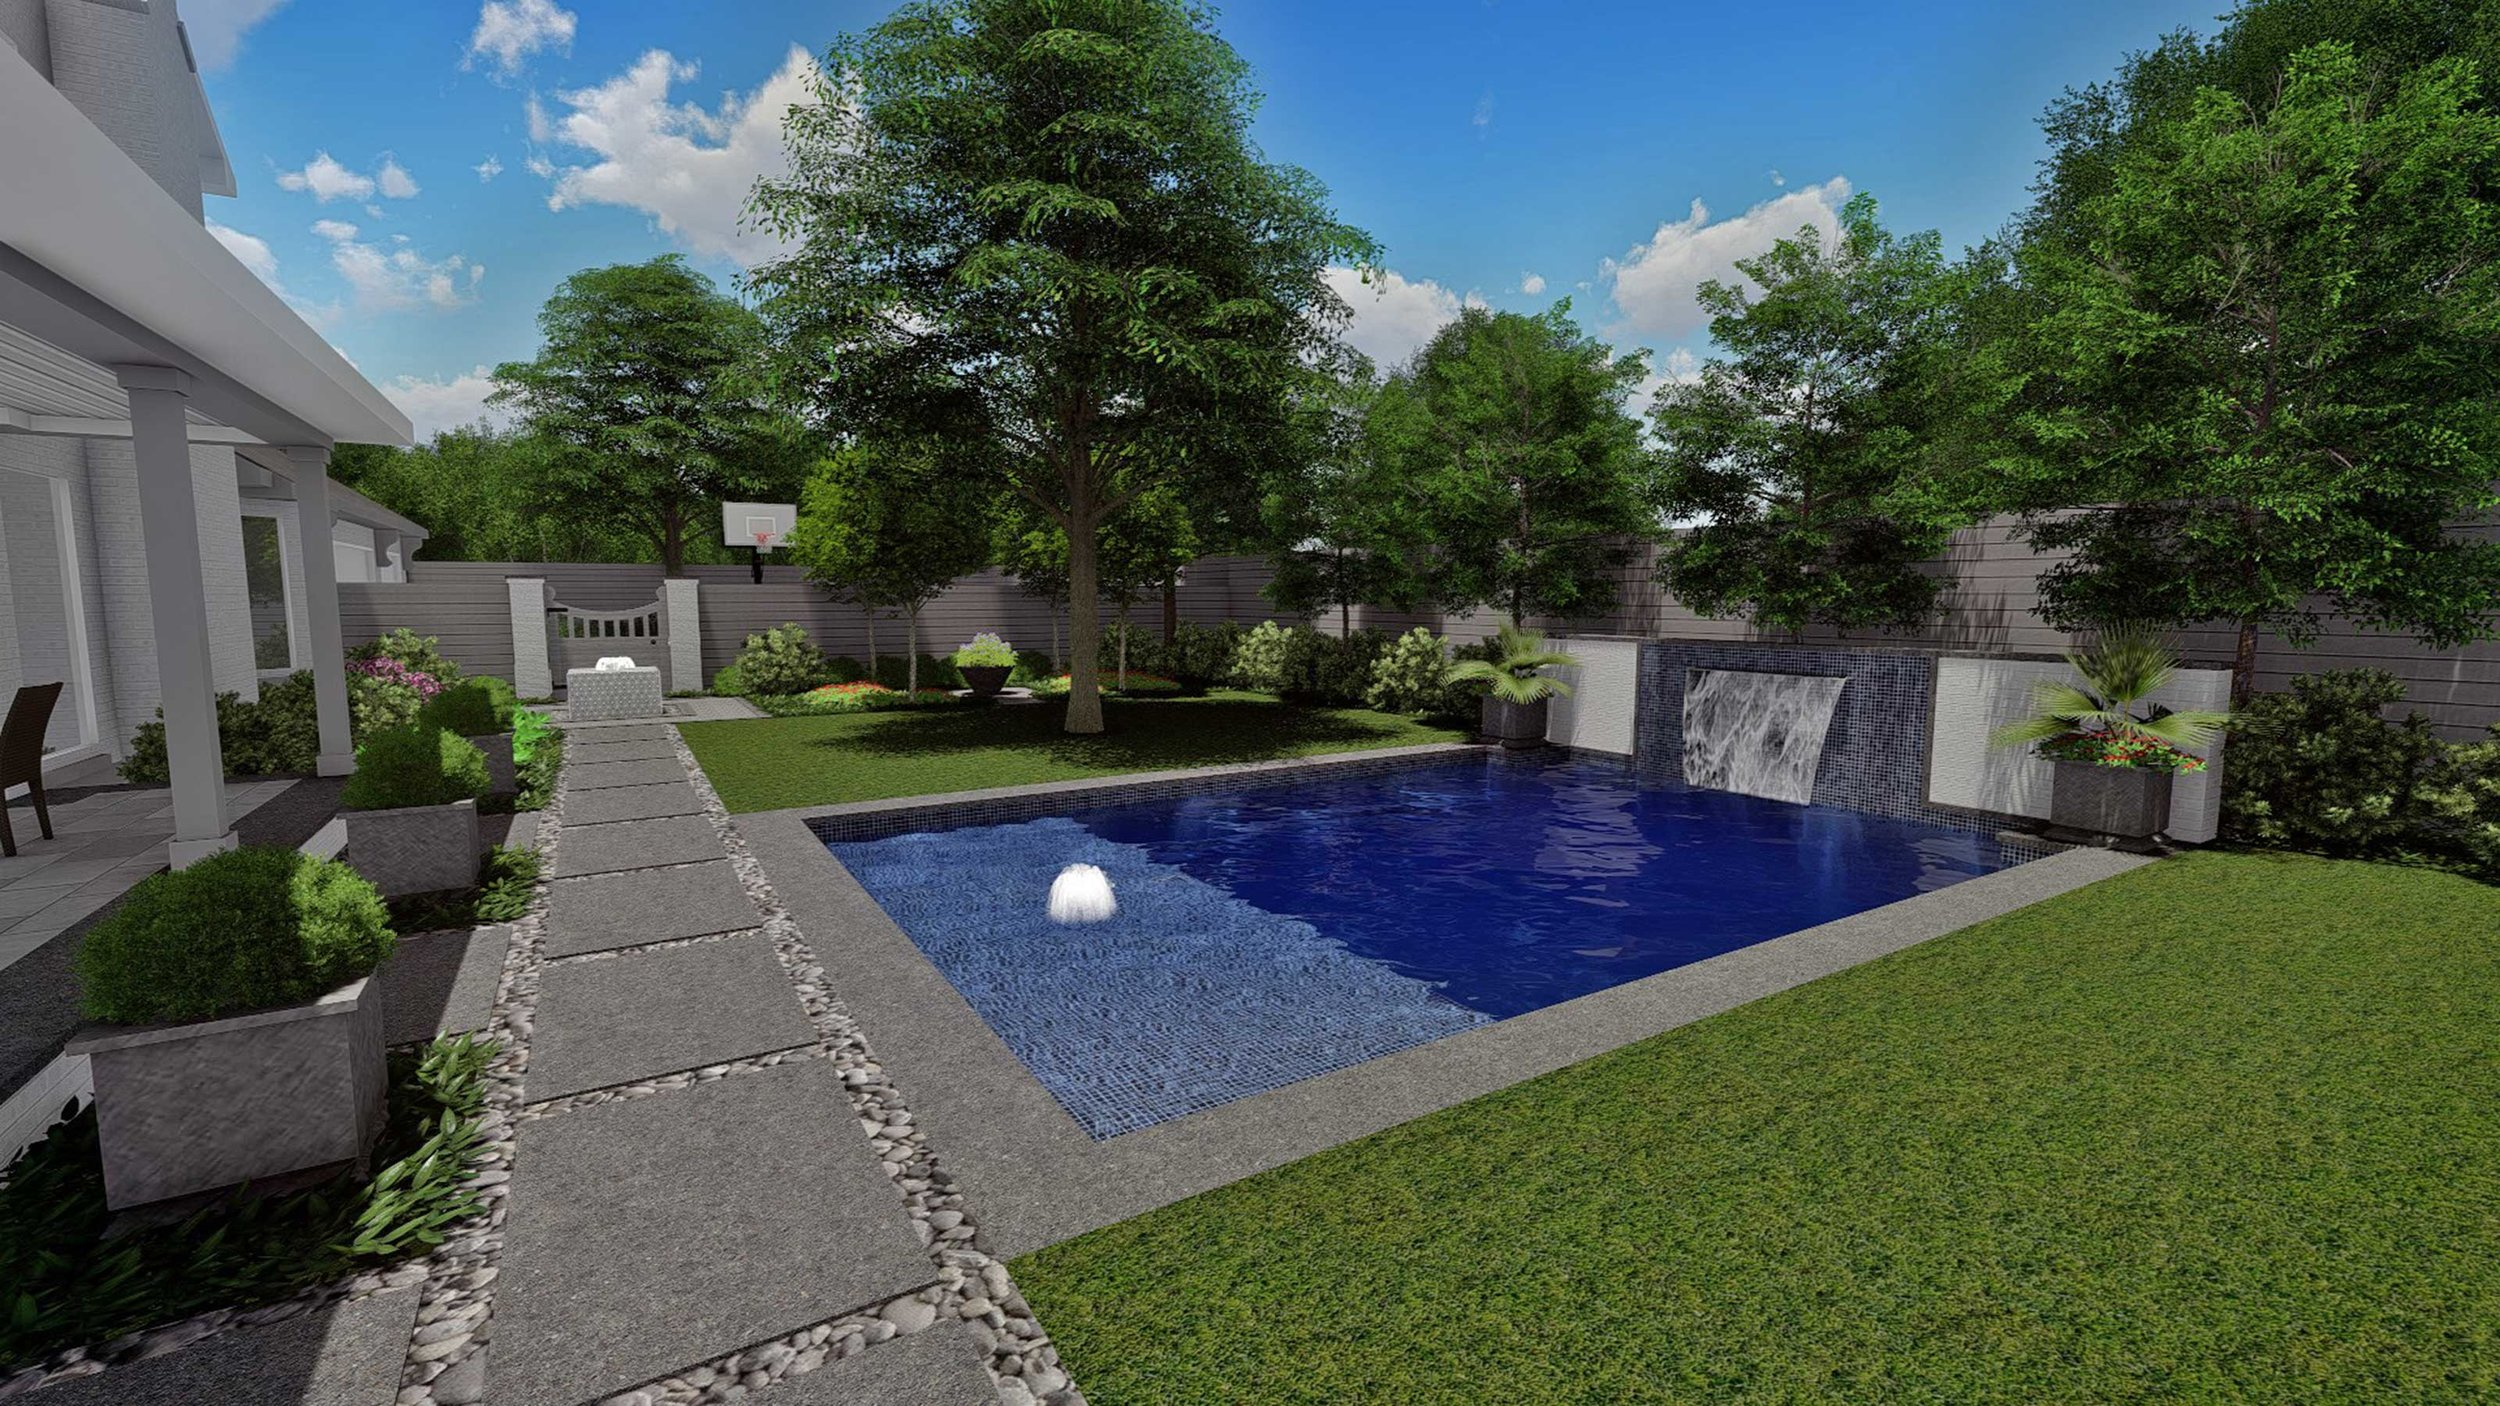 Pool & Rear Garden View